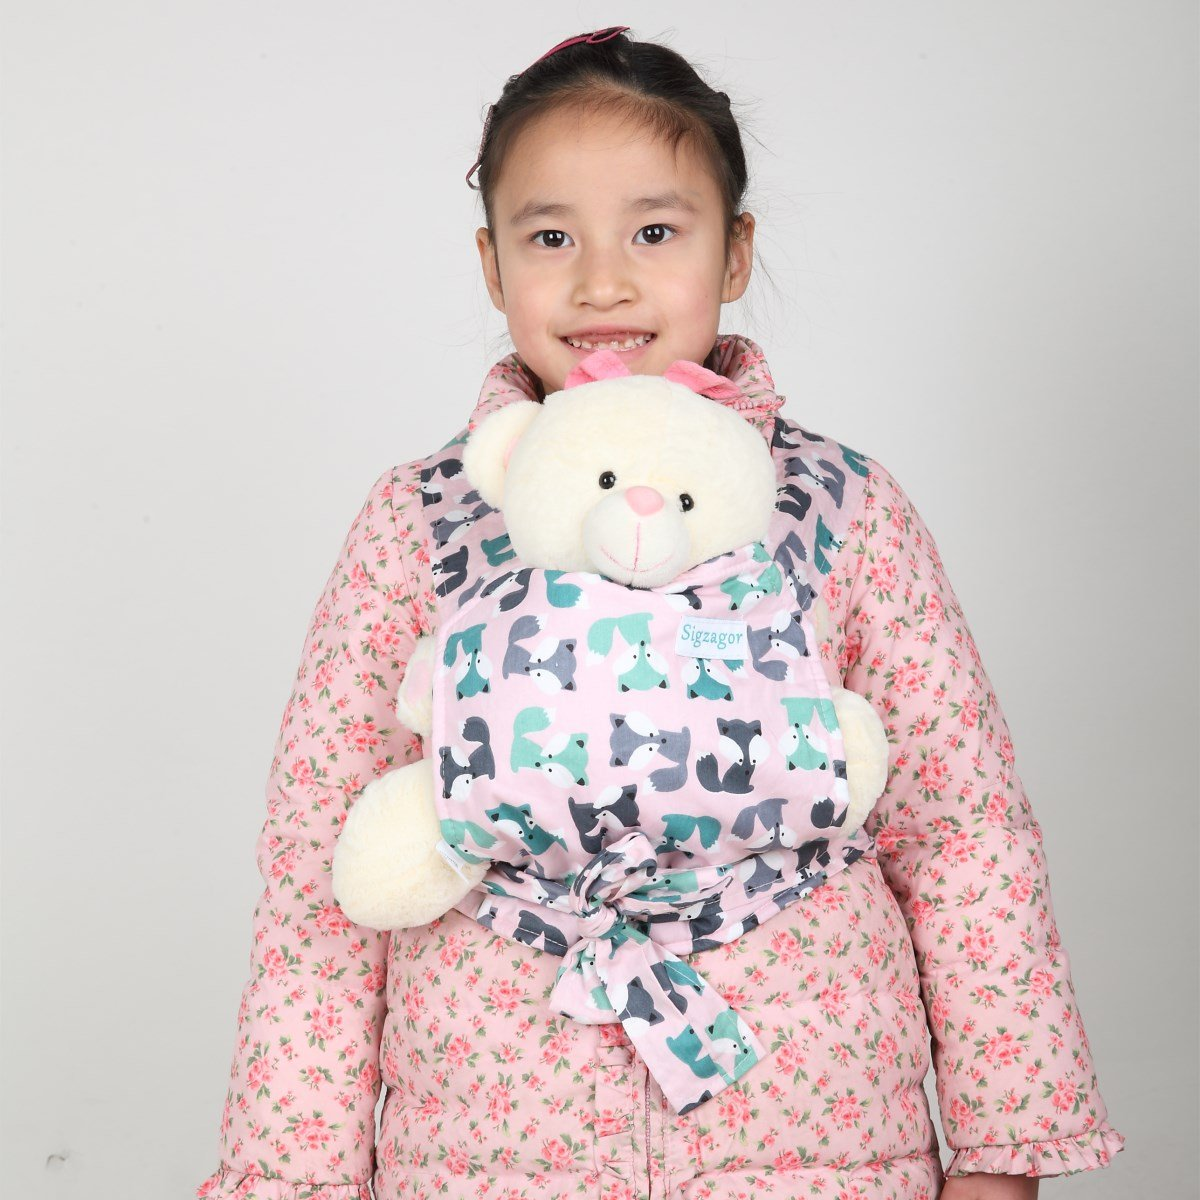 7d671bf2438 Sigzagor Baby Doll Carrier Mei Tai Sling Toy For Kids Children Toddler  Front Back